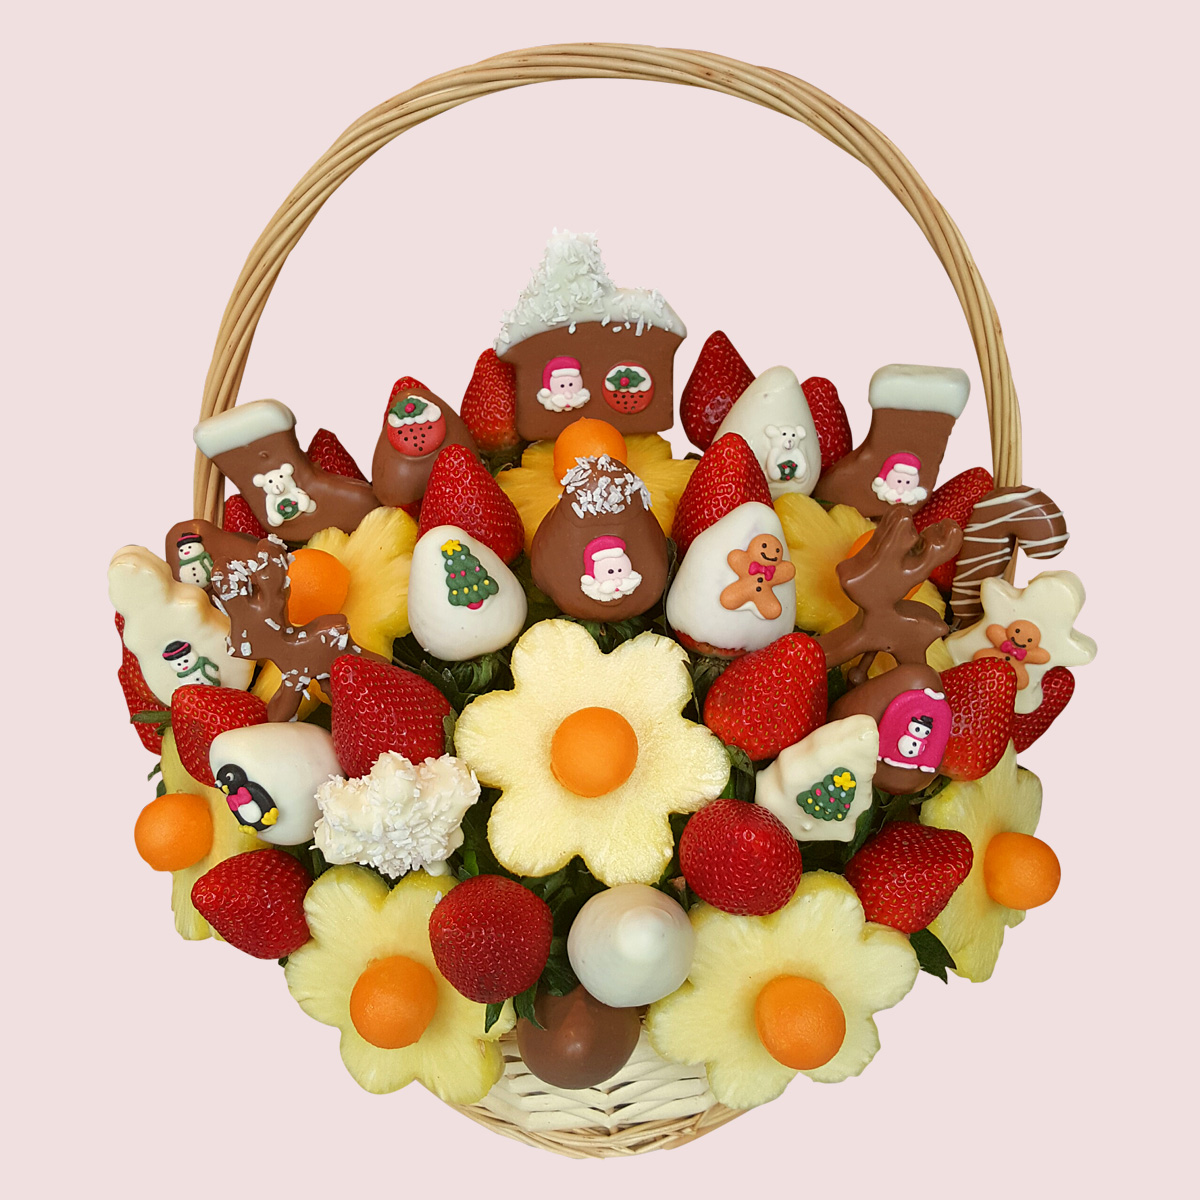 Baby Gift Edible Arrangements : Gift baskets fruit edible bouquets flowers